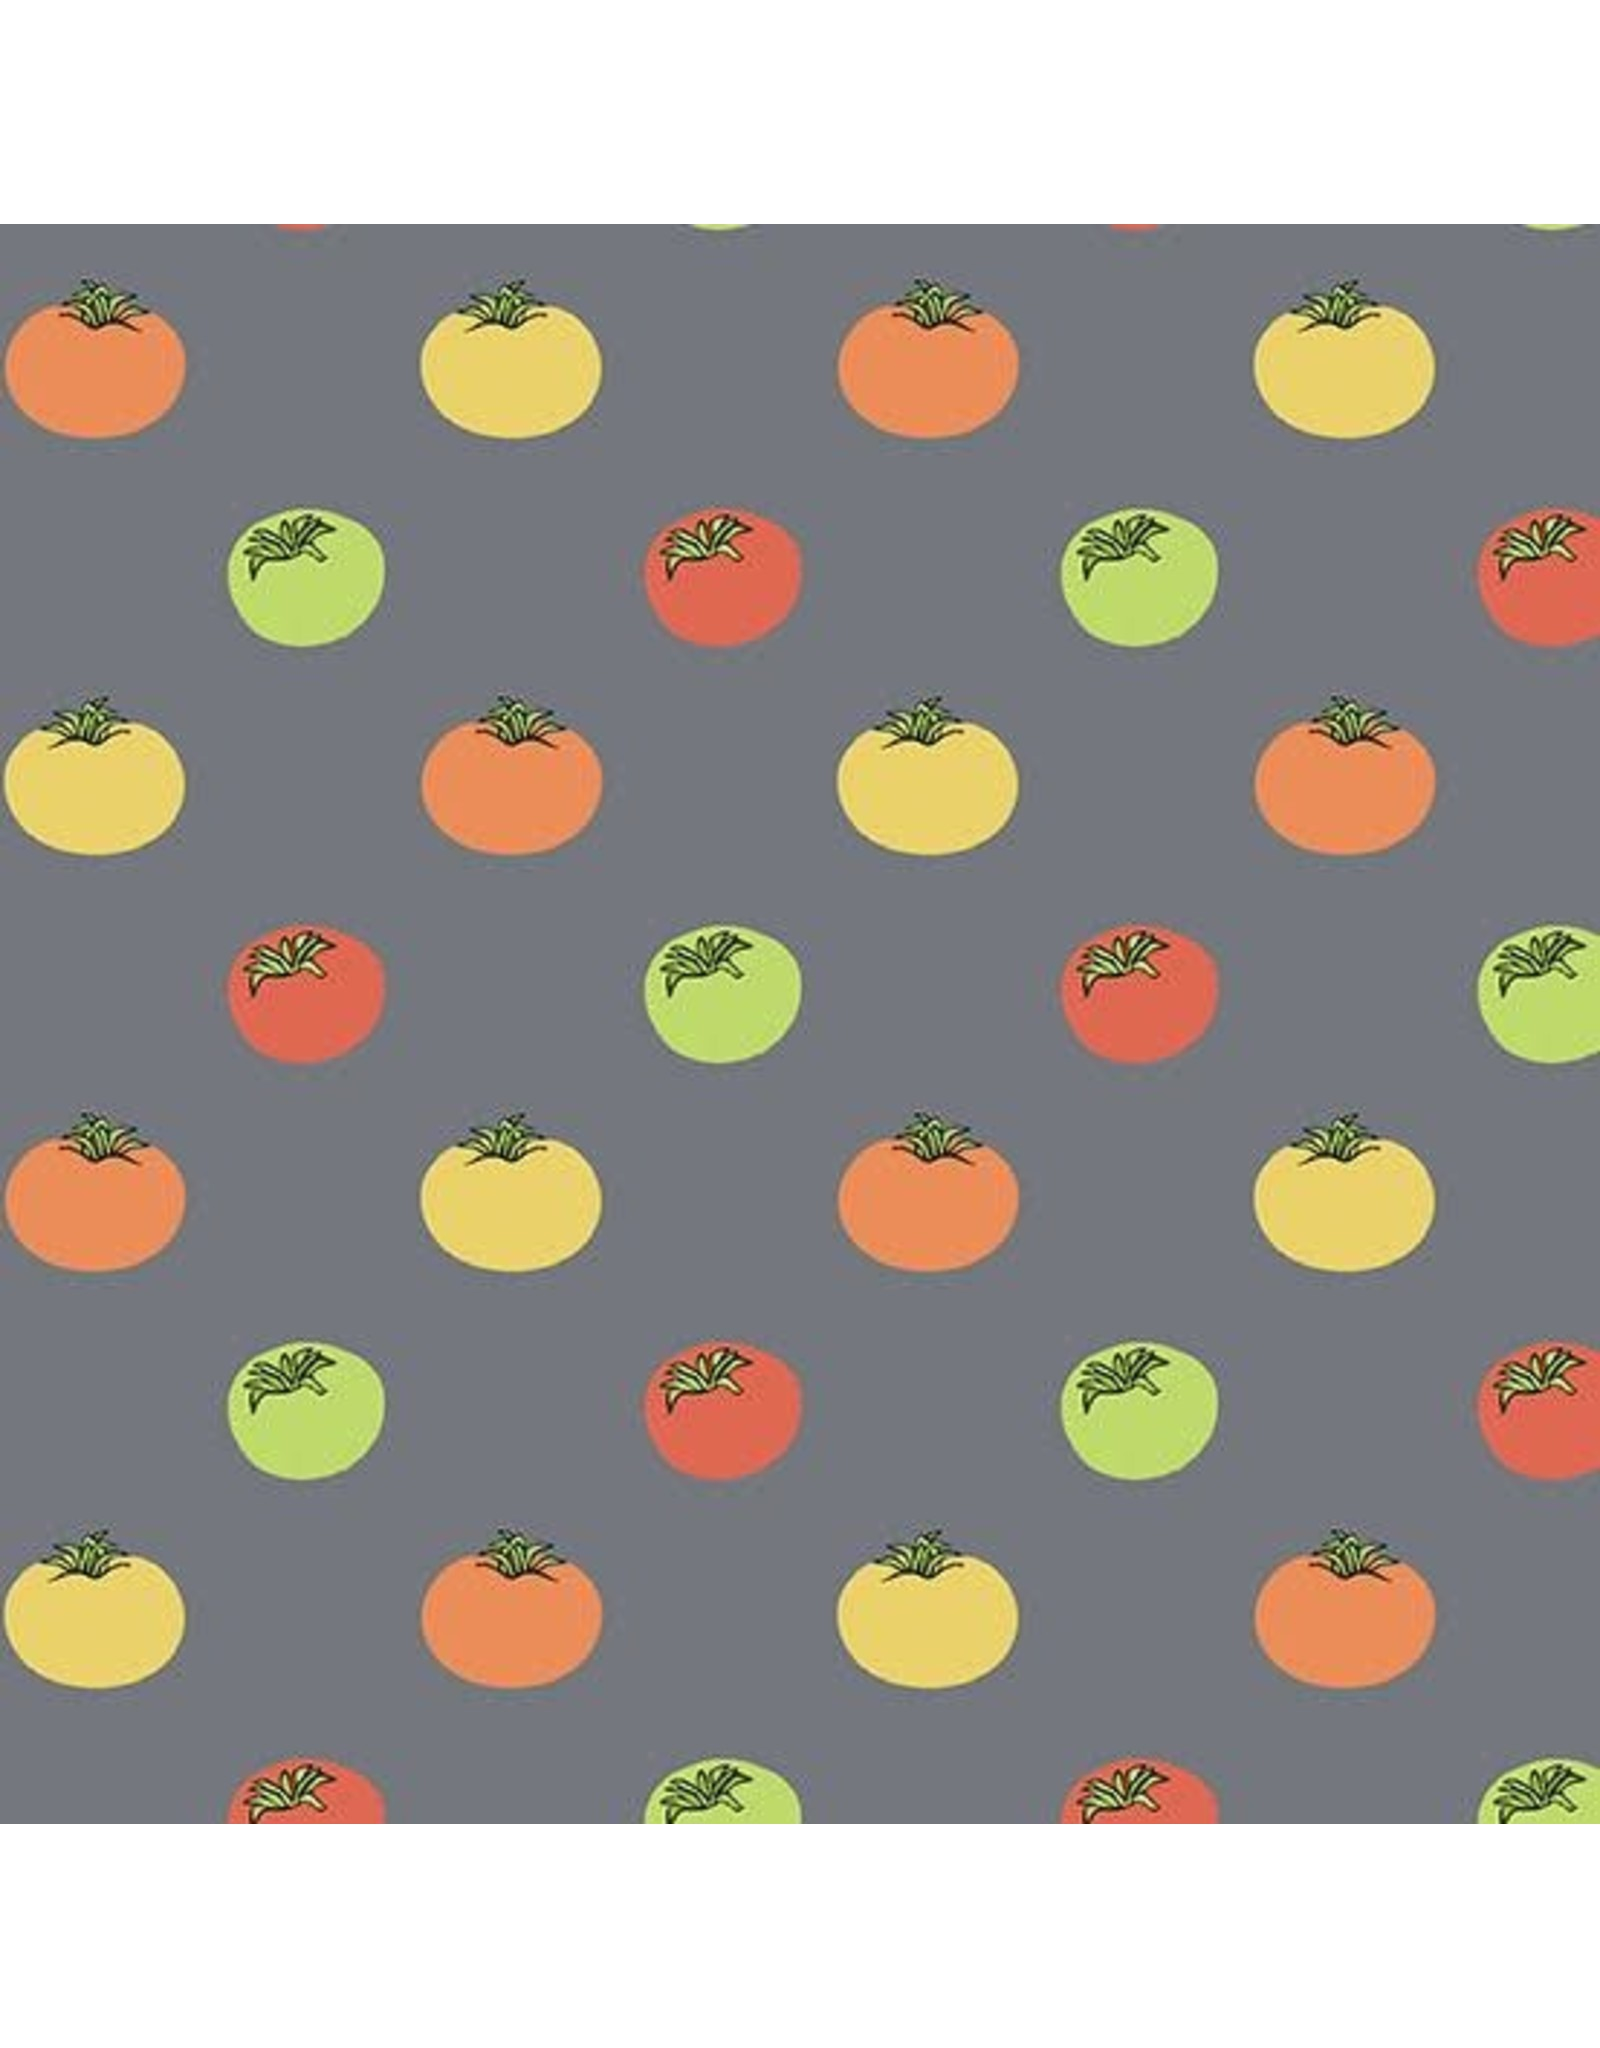 Andover Fabrics Farm to Fabric, Heirloom Tomatoes in Grey, Fabric Half-Yards 9391-C